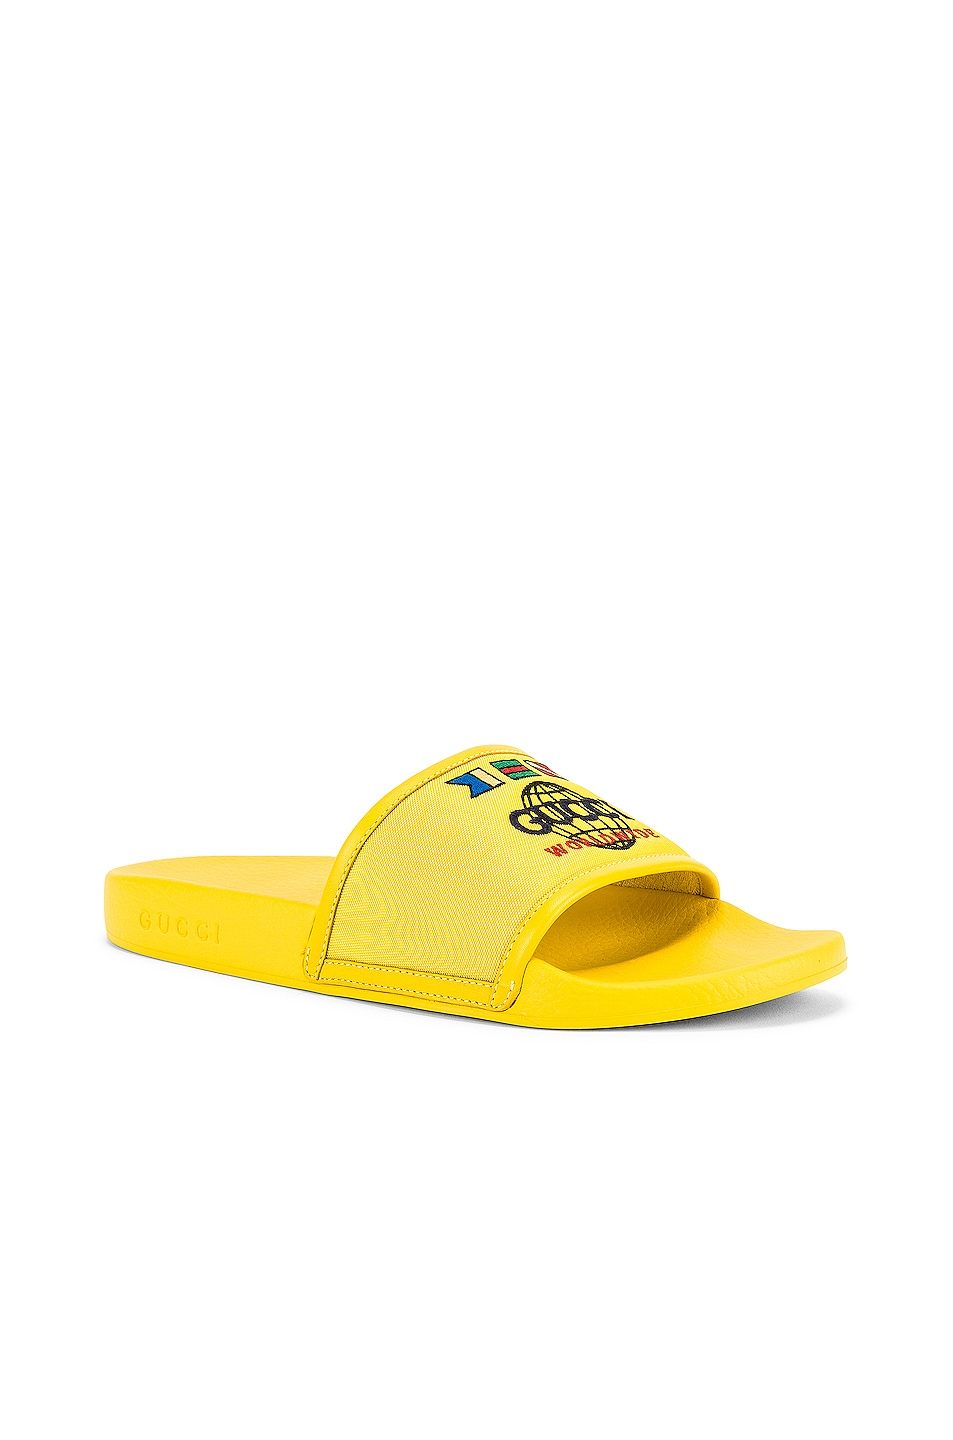 Image 1 of Gucci Pursuit Slide in Smile Yellow & Yellow